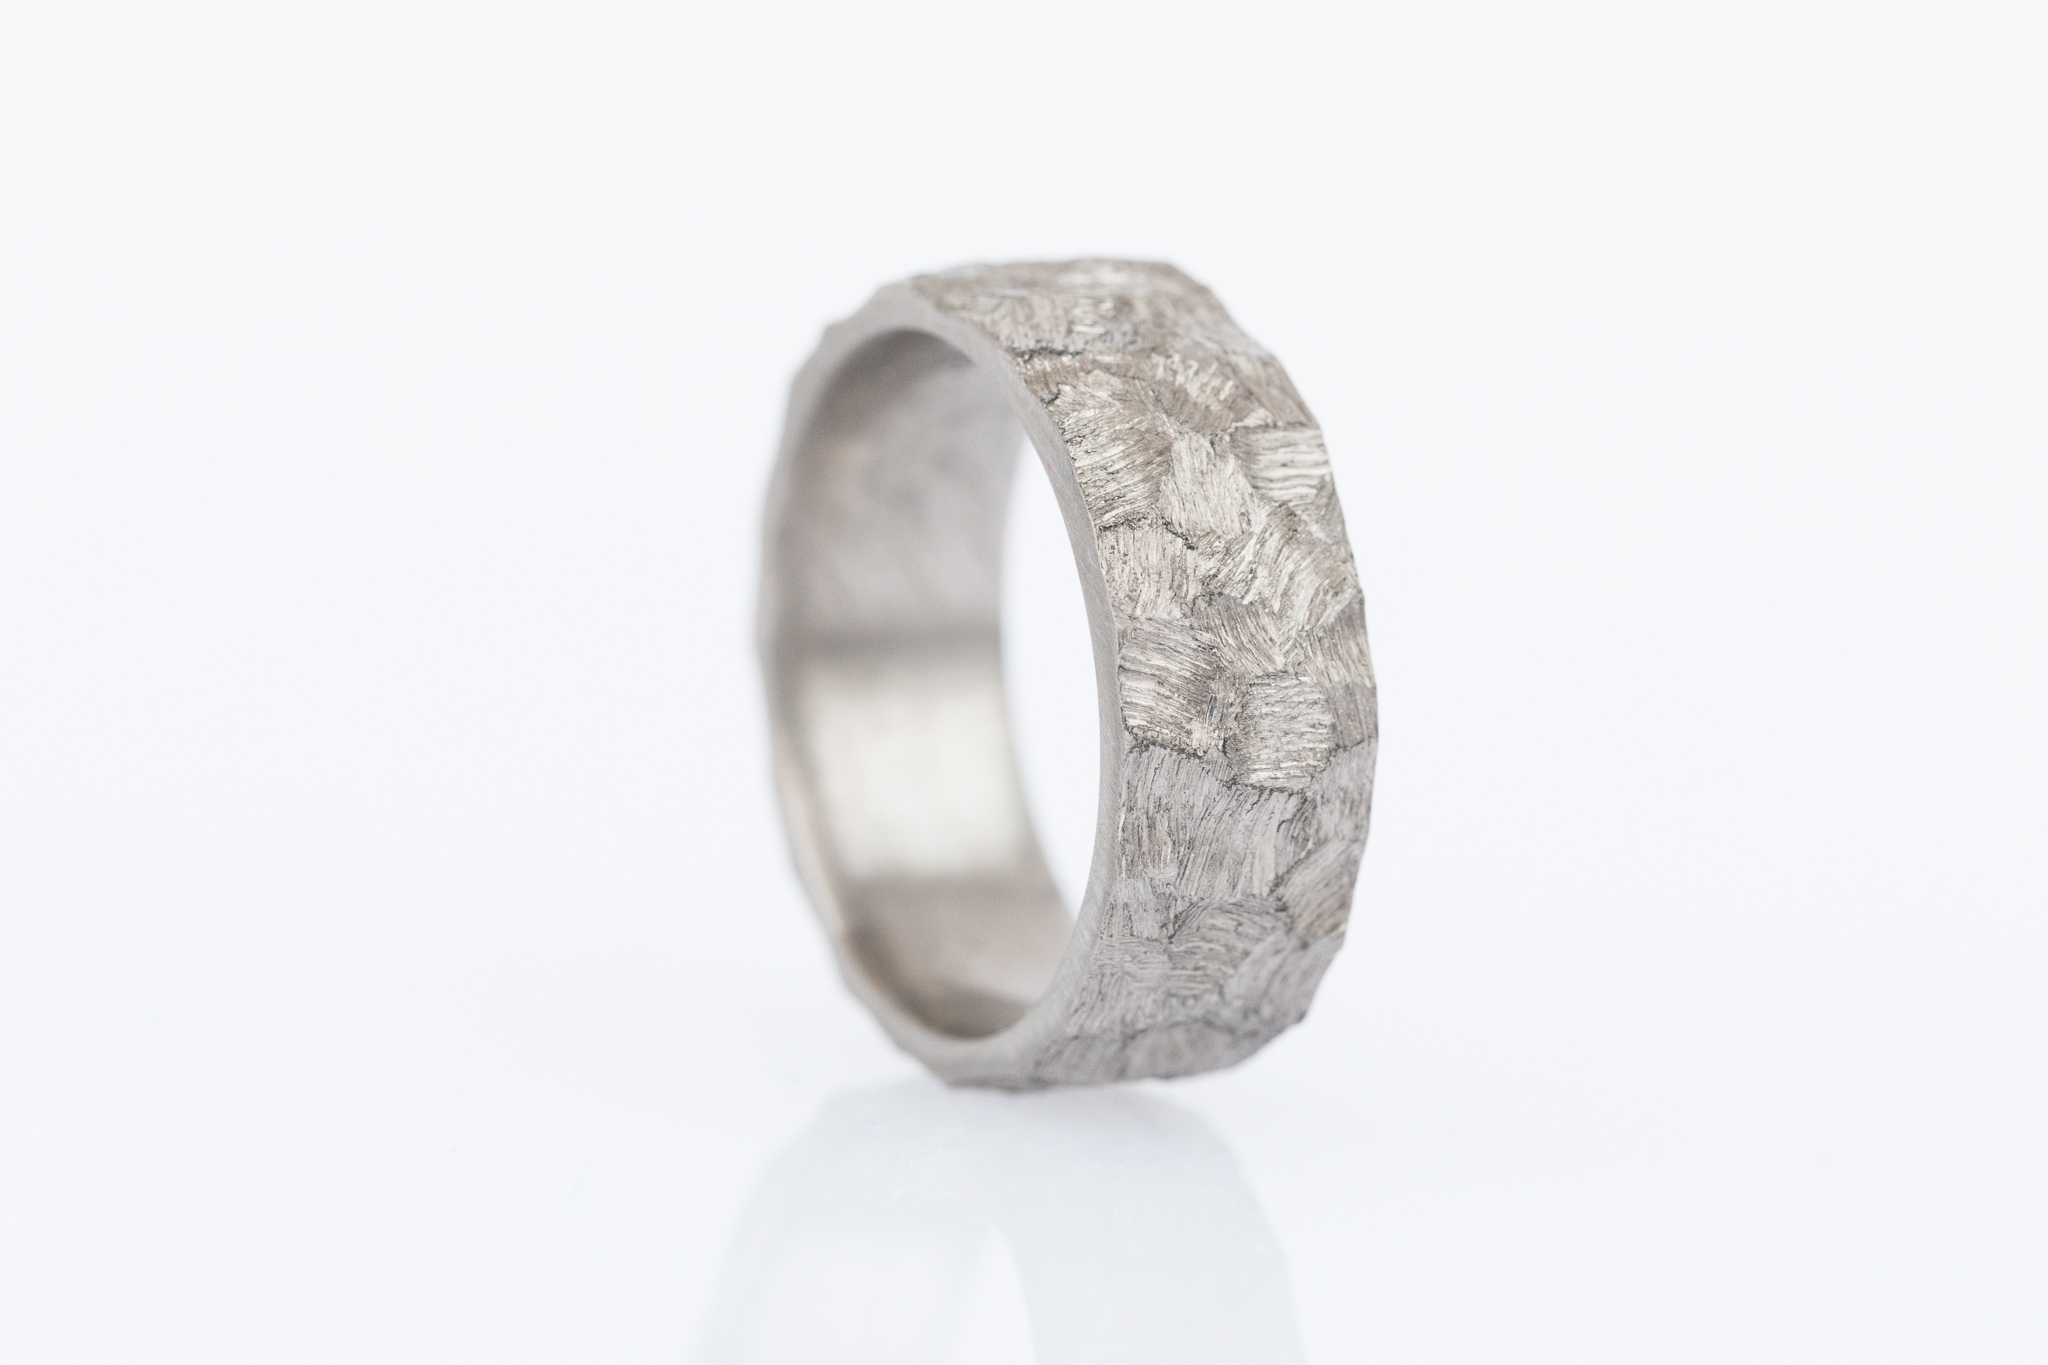 Igor's custom textured wedding band makes a unique statement.